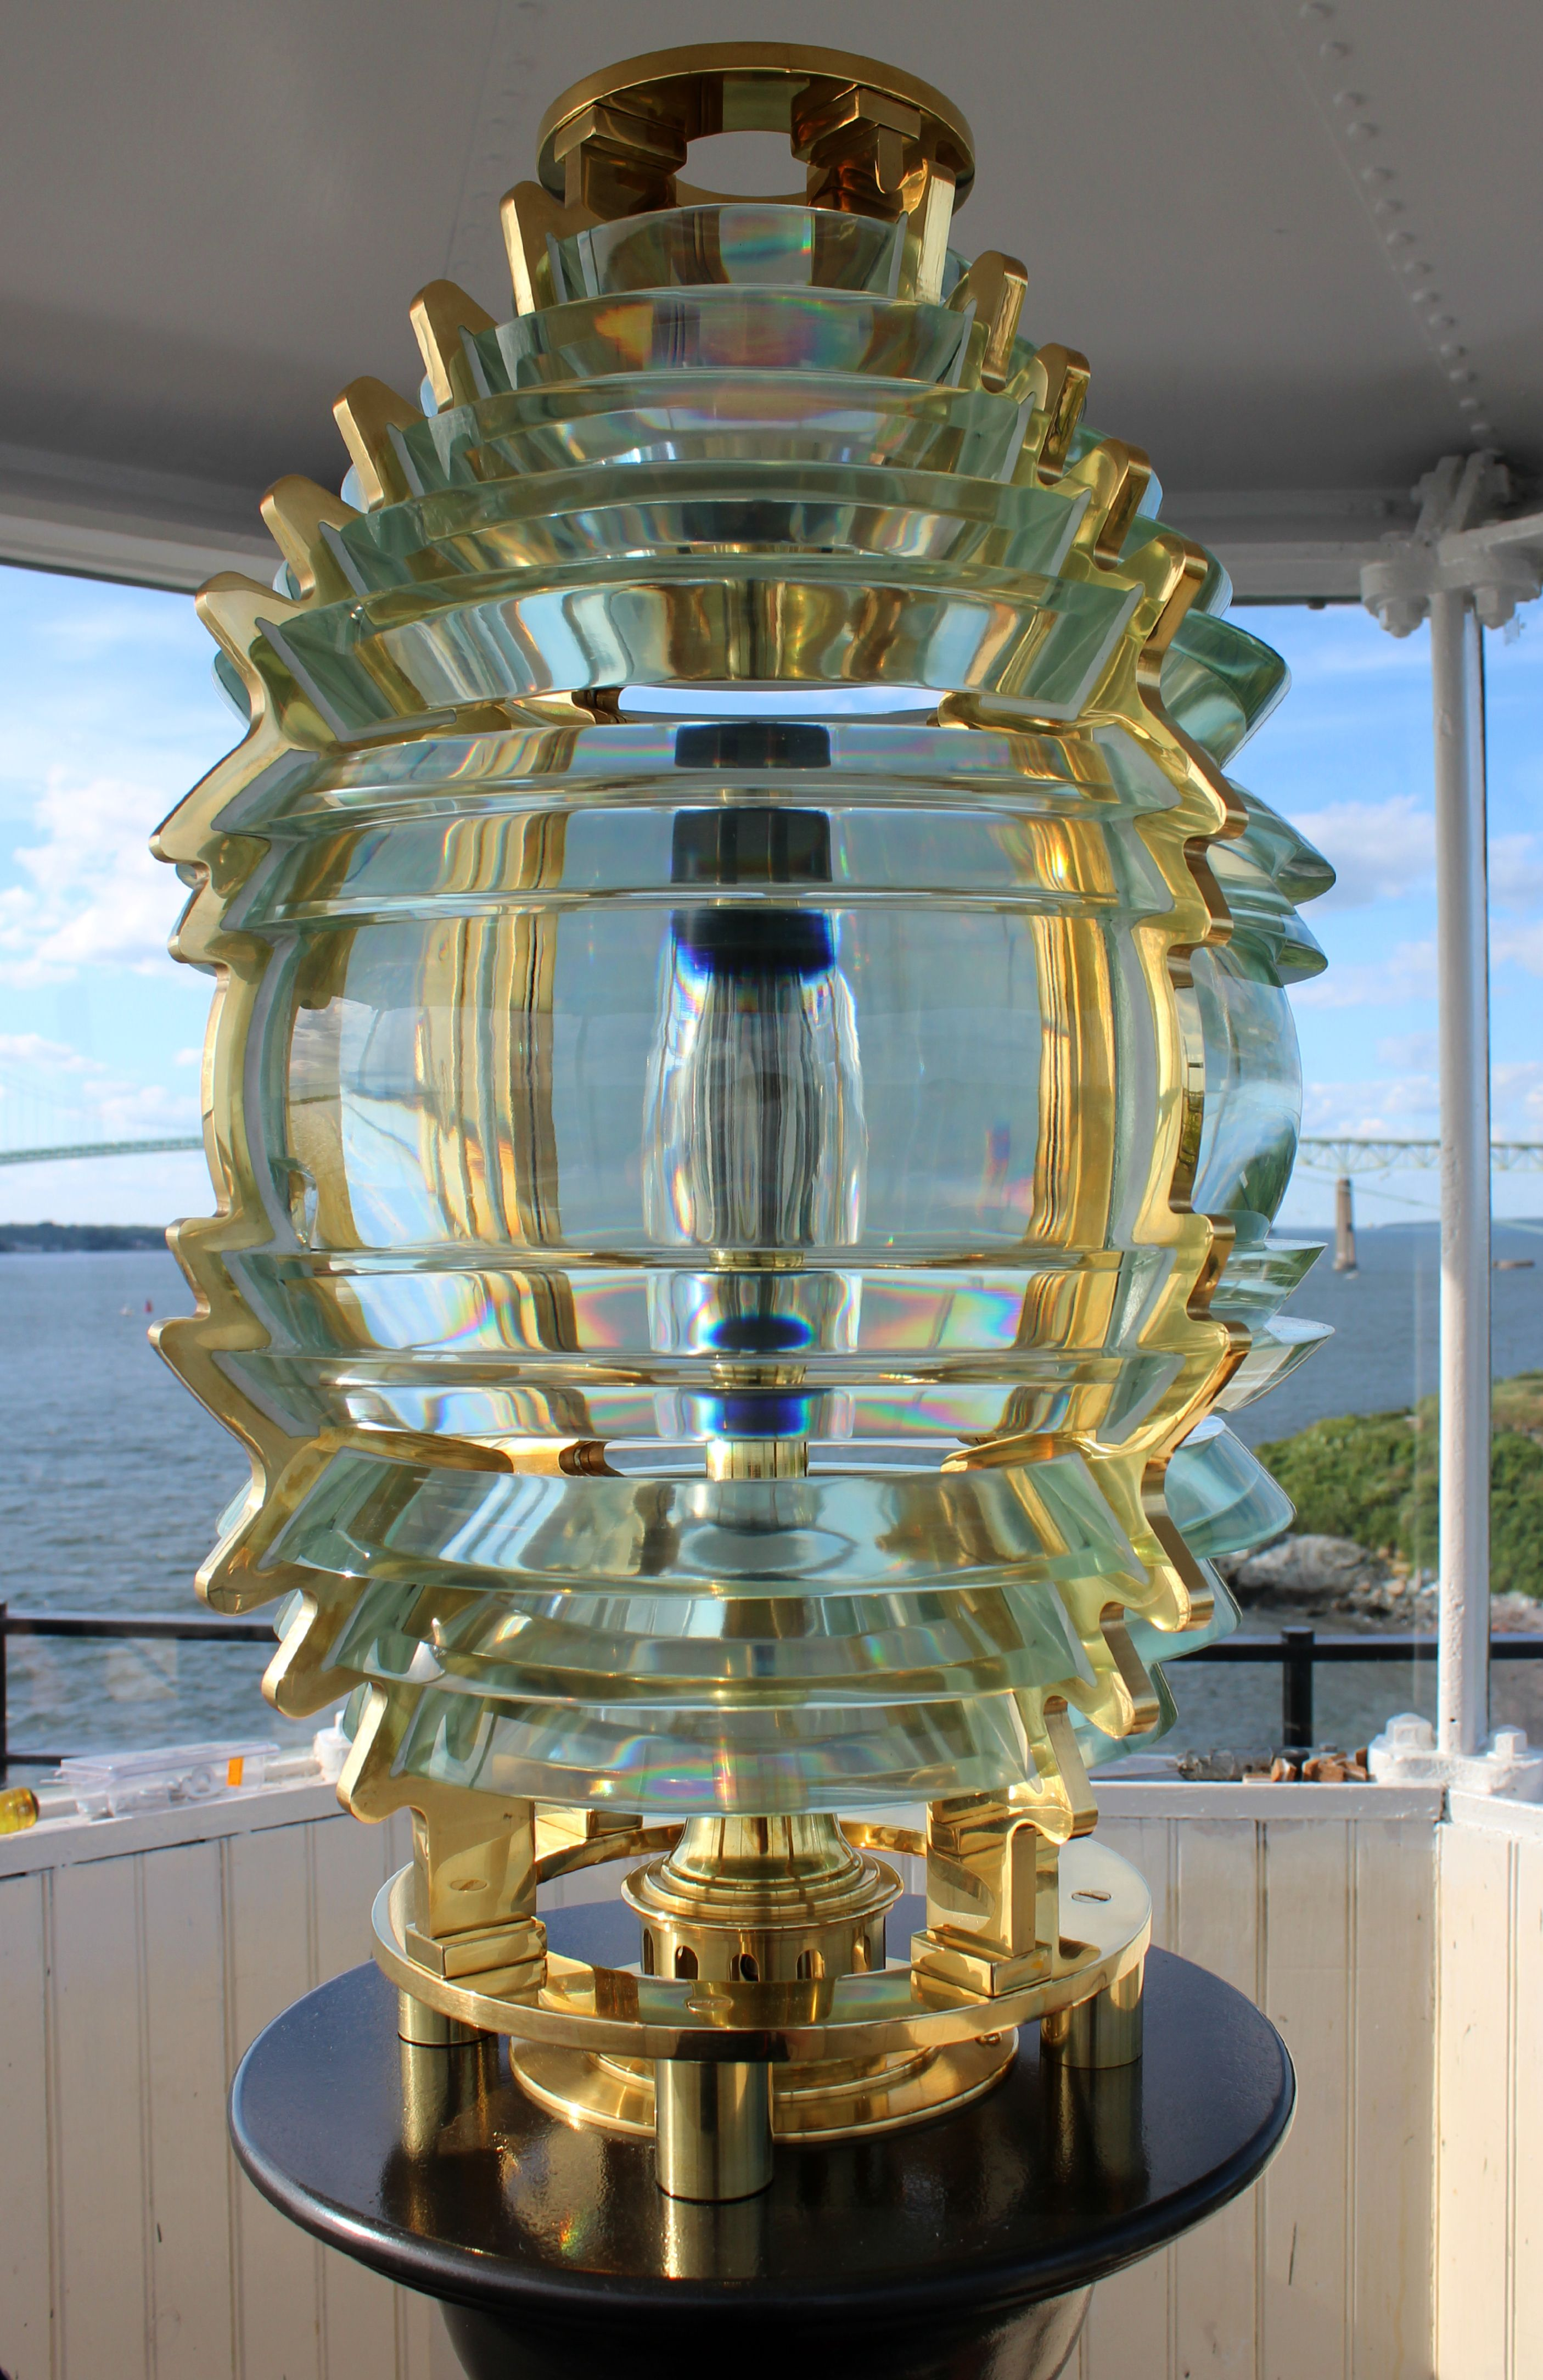 This Beautiful Reproduction Fresnel Lens Now Sits In The Lantern